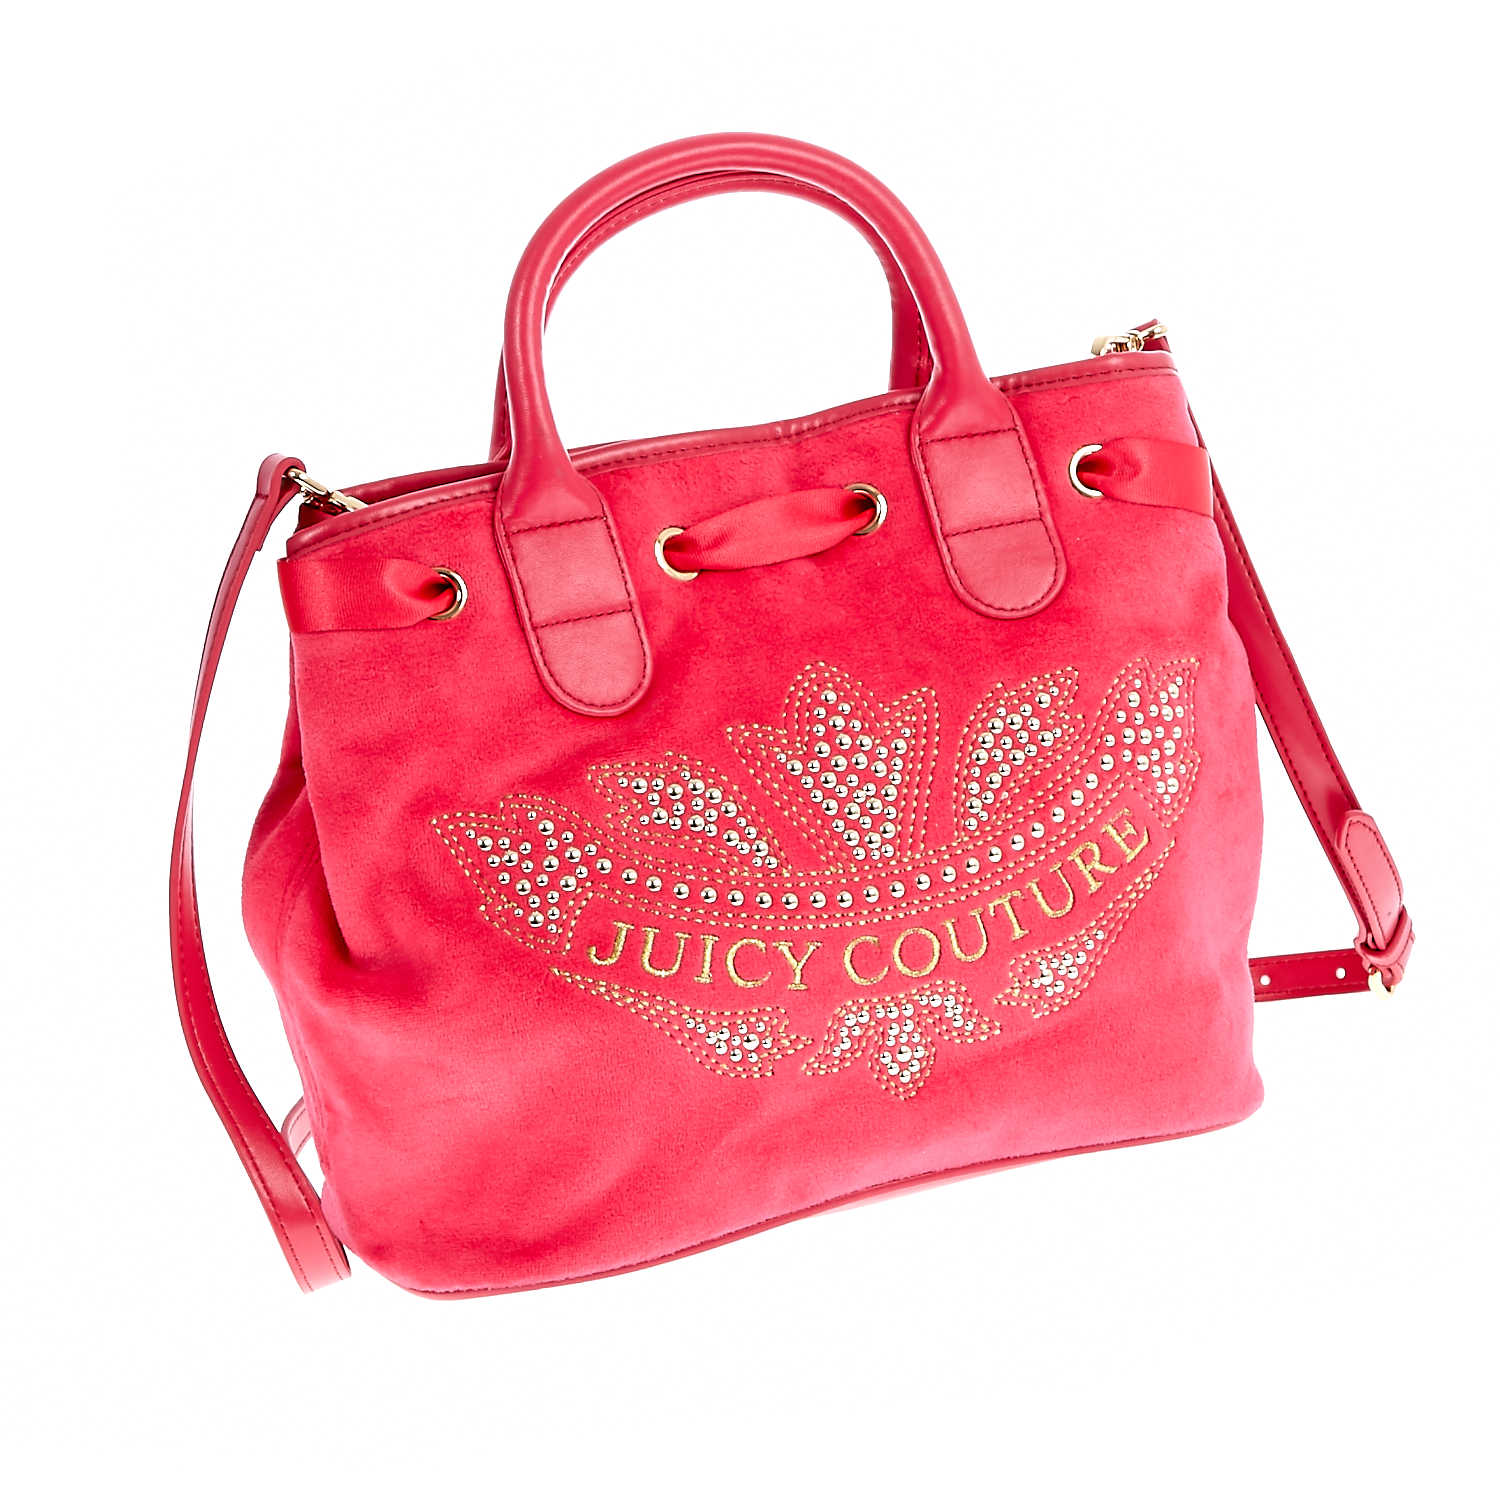 JUICY COUTURE – Γυναικεία τσάντα Juicy Couture κόκκινη-φούξια 1441286.0-004H